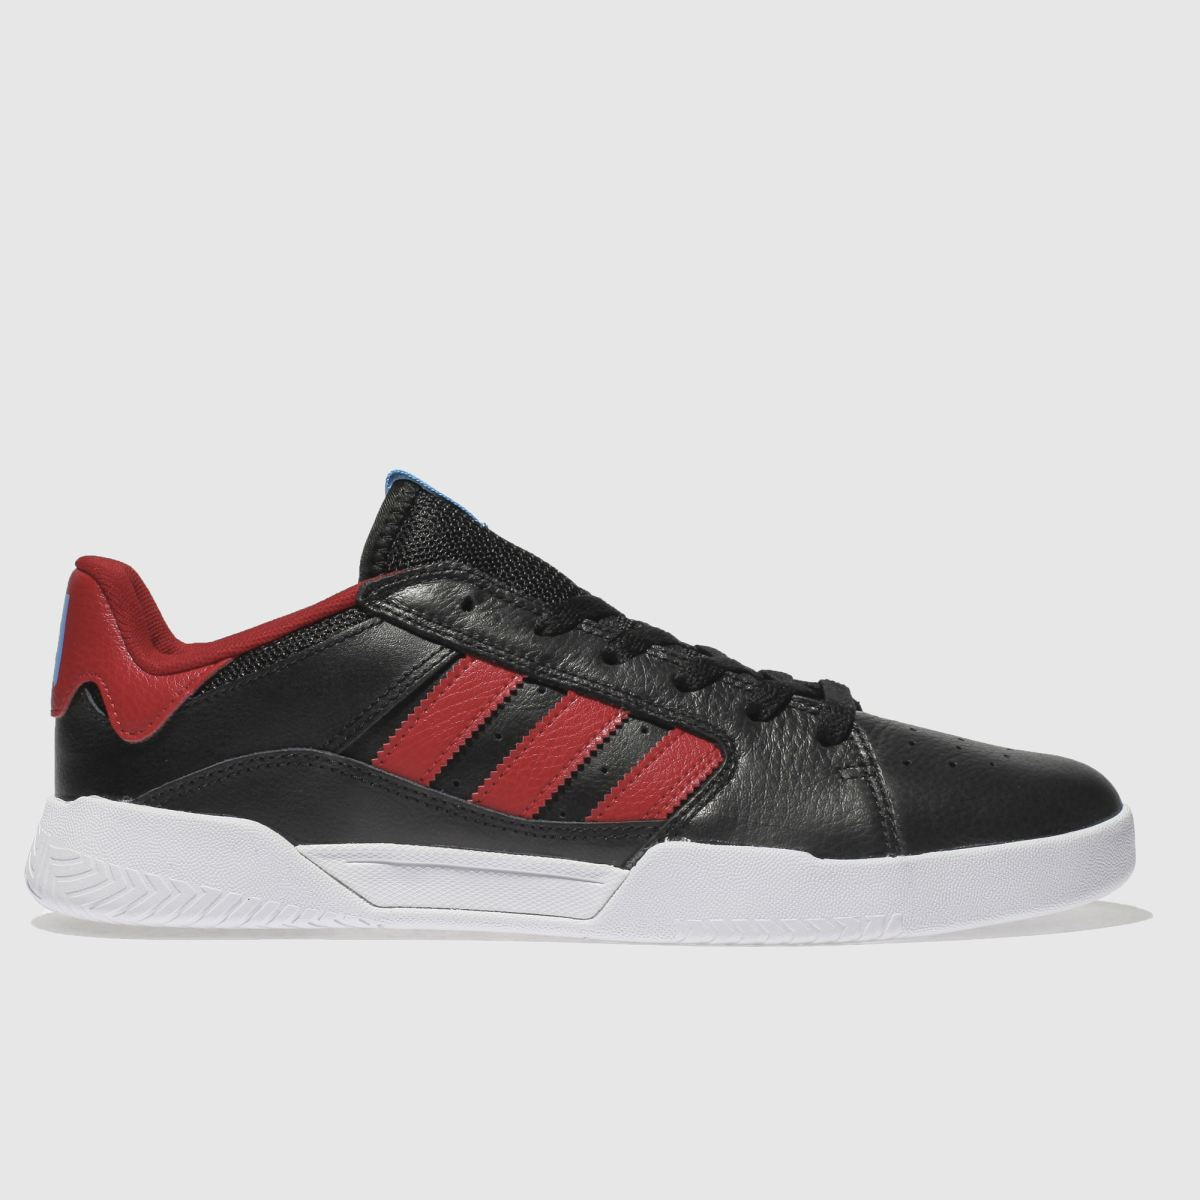 Adidas Skateboarding Black & Red Vrx Low Trainers